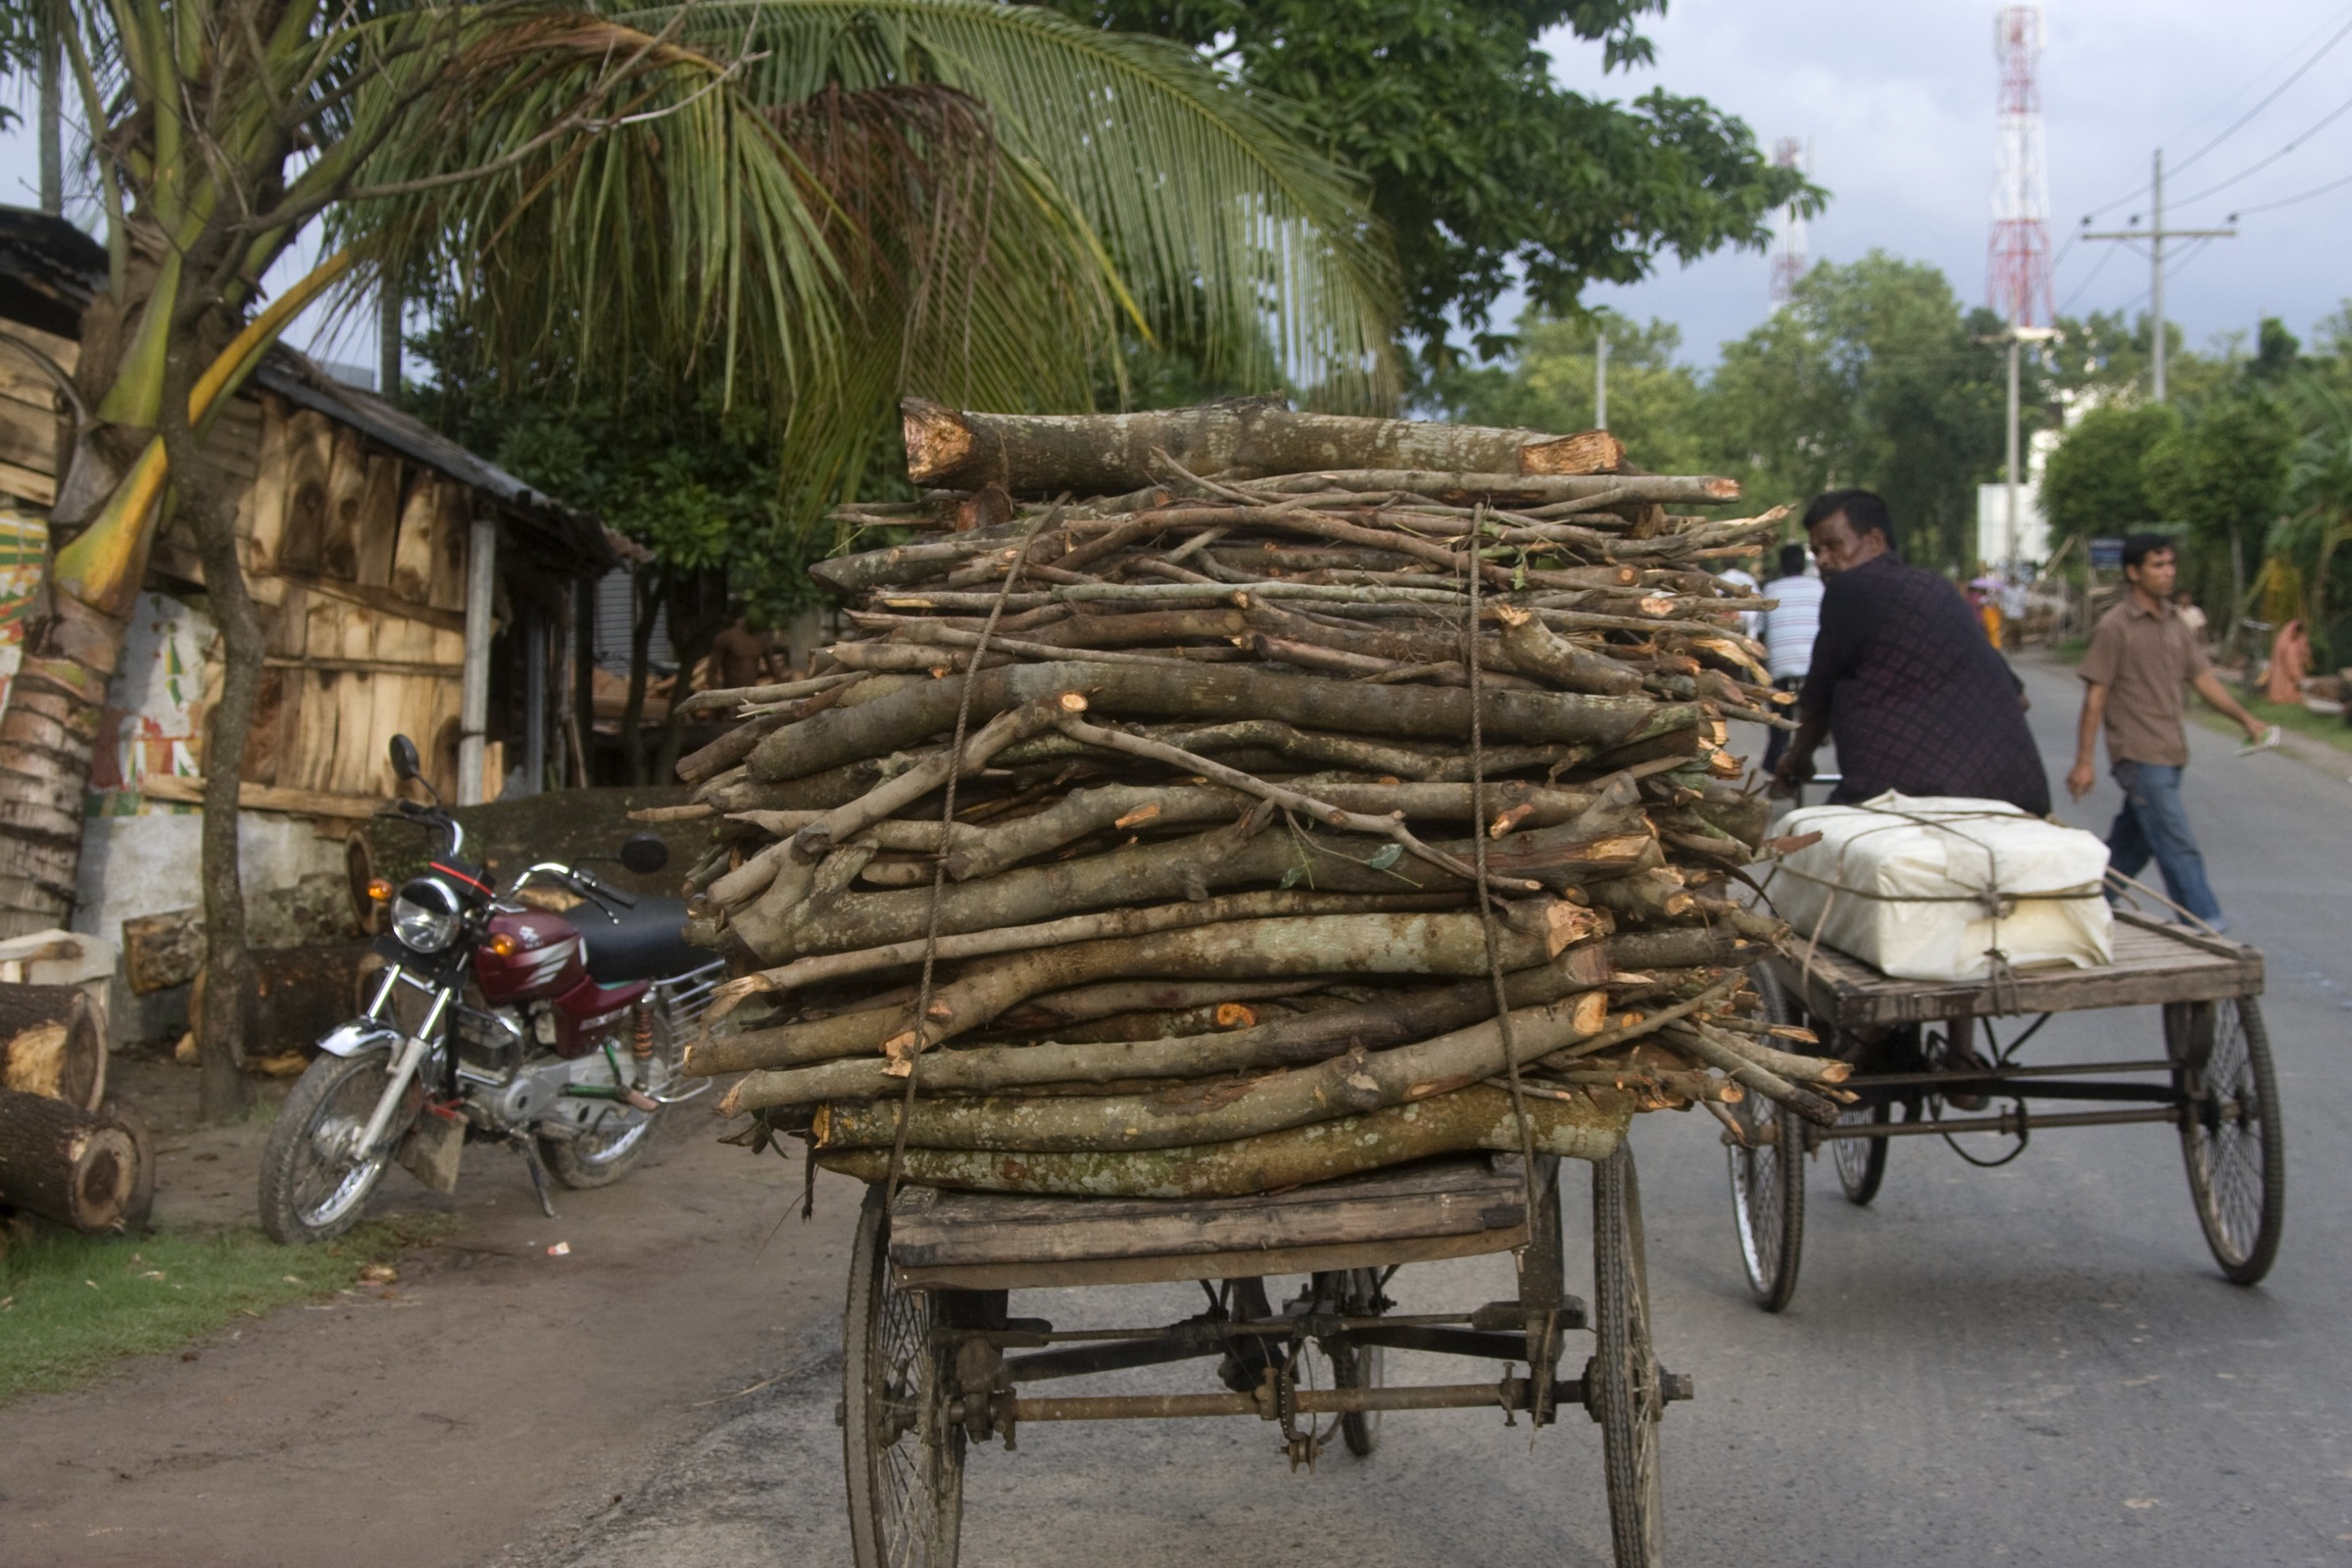 Deforestation and the extraction of forest products, like this collection of firewood from the Ganges Delta region of Bangladesh, continues to put stress on these ecosystems and the organisms that live there. Photograph by David Woodfall